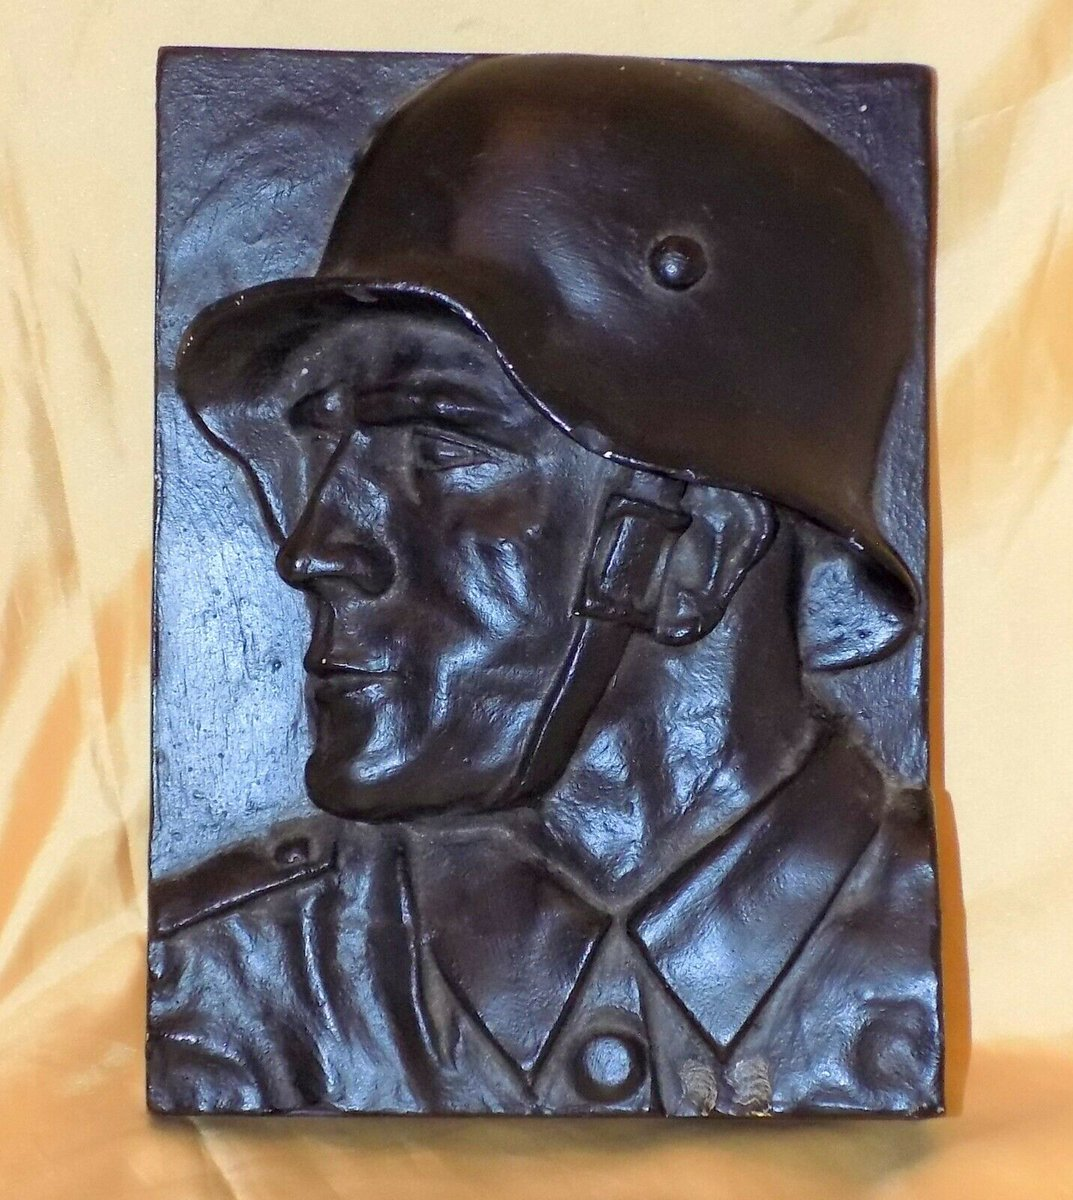 #Antiques #Militaria #Collectables #Jewellery #Auction - #Vintage WWII Unusual 2D Heavy Cast Bust Wall Hanging Typical German Soldier 1940s https://www.ebay.co.uk/itm/123845738027…